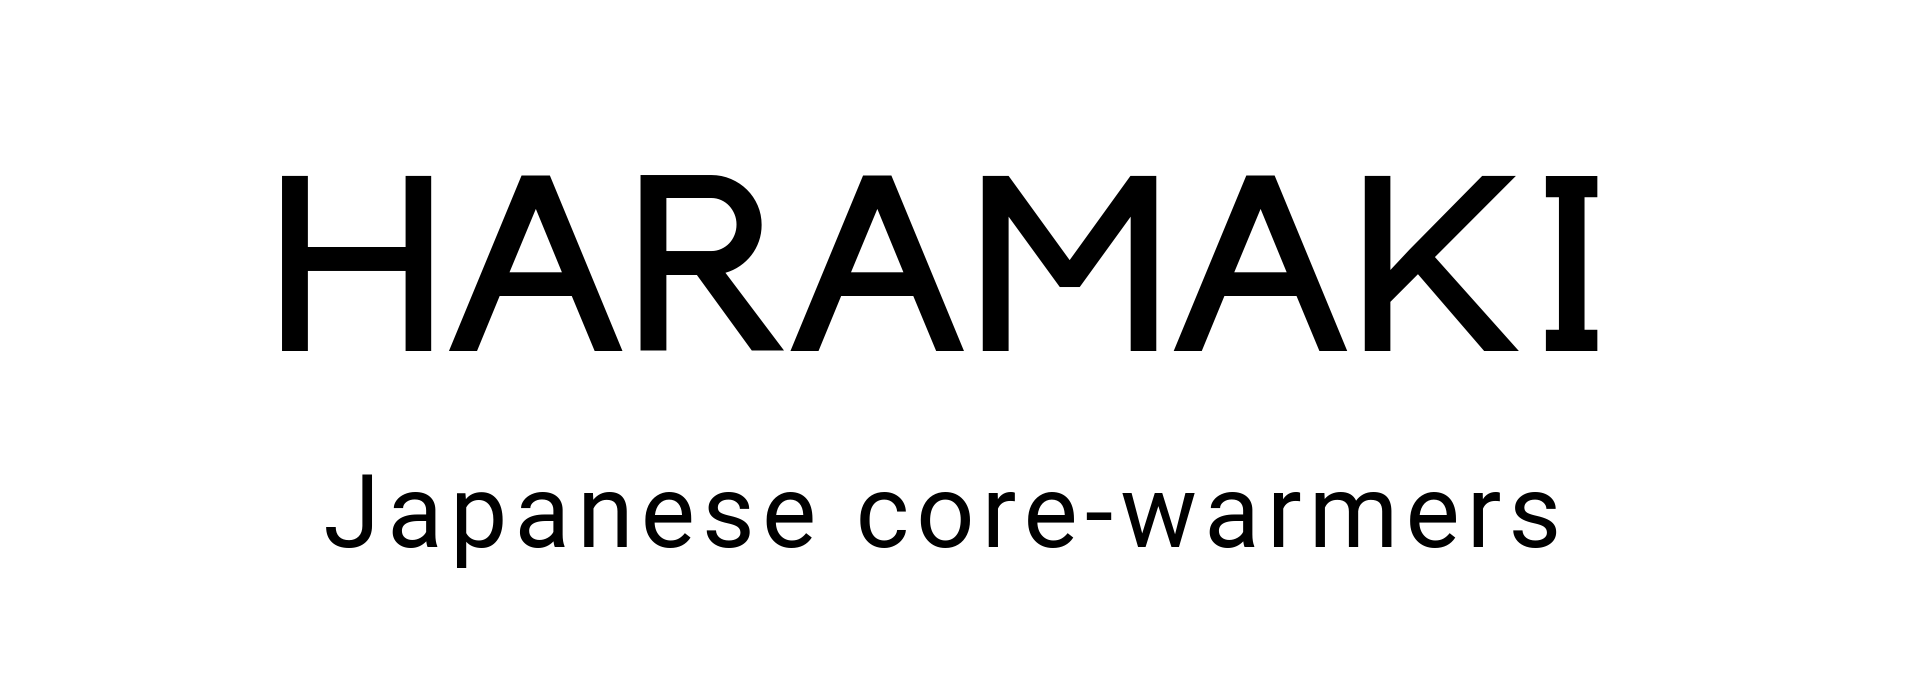 Haramaki Japanese Core-Warmers